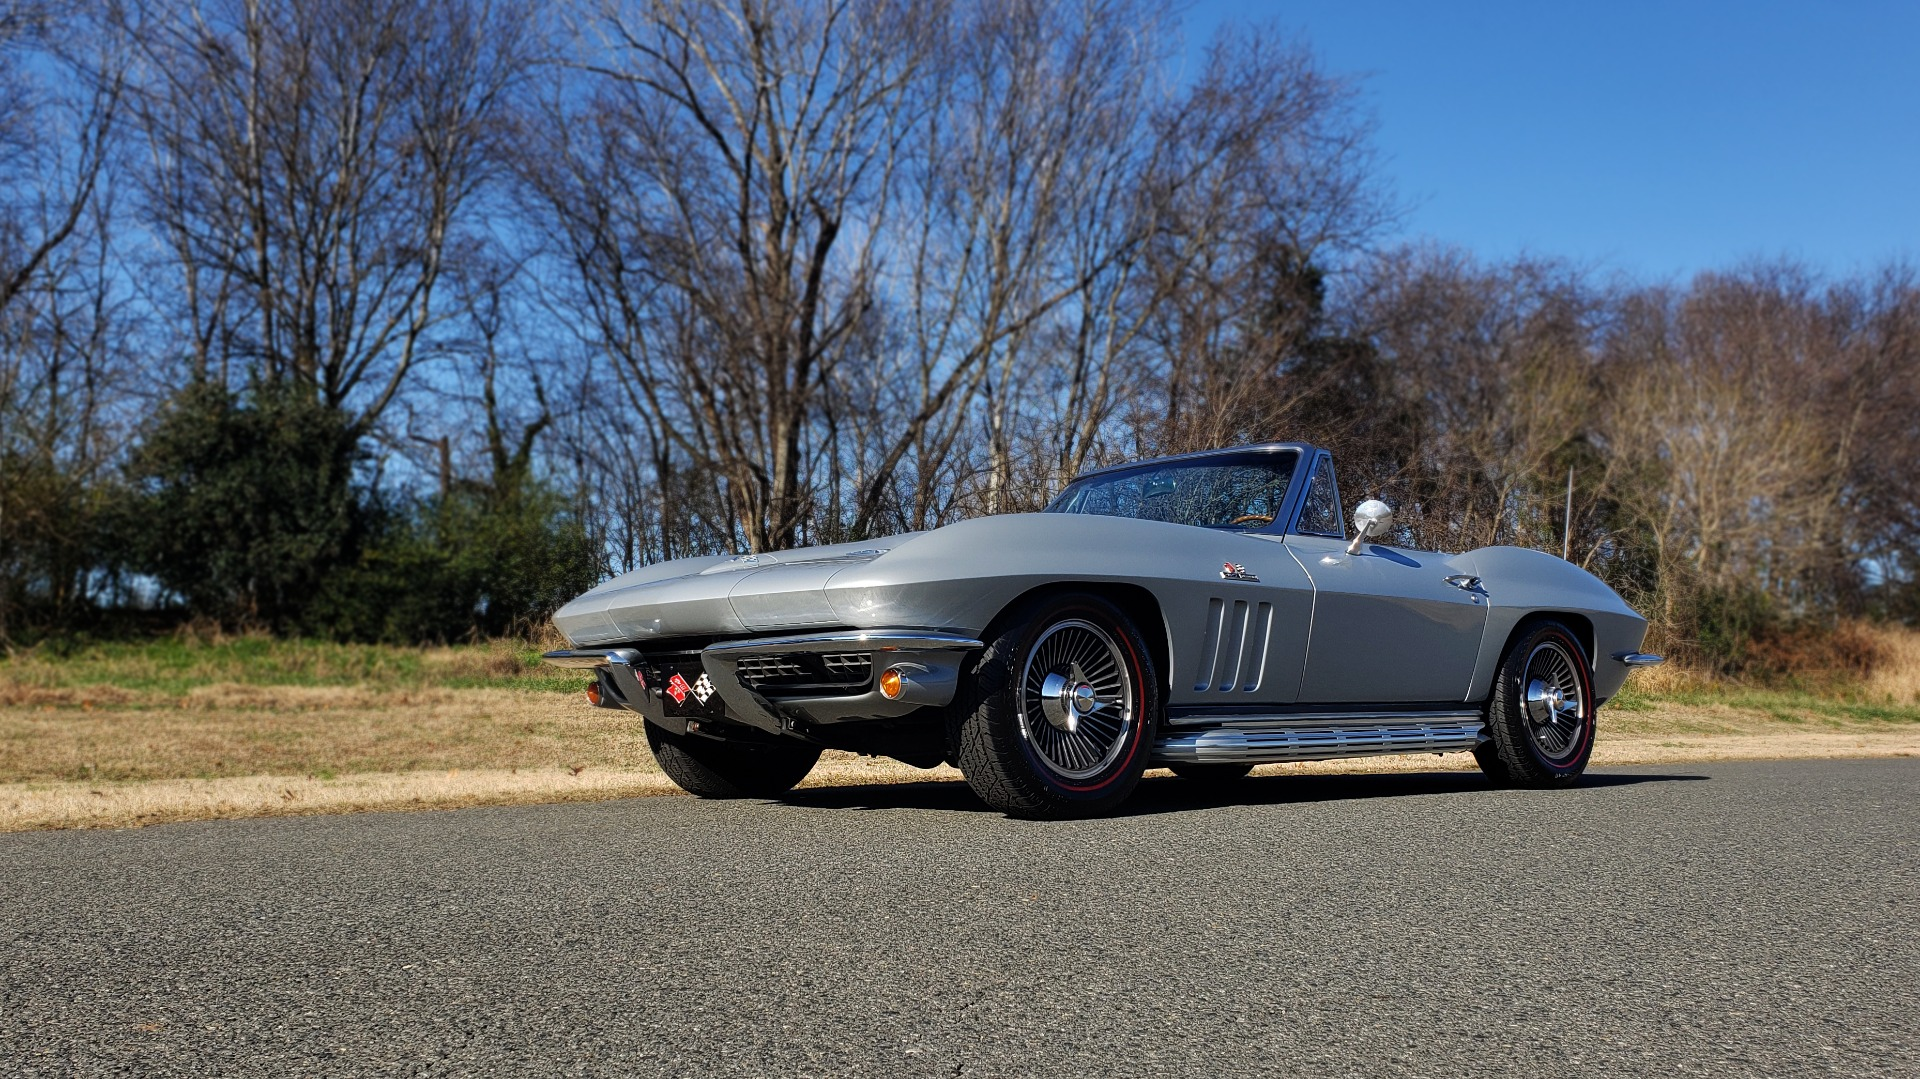 Used 1966 Chevrolet CORVETTE STINGRAY CONVERTIBLE 427 / 4-SPD / NUMBER MATCHING for sale Sold at Formula Imports in Charlotte NC 28227 21